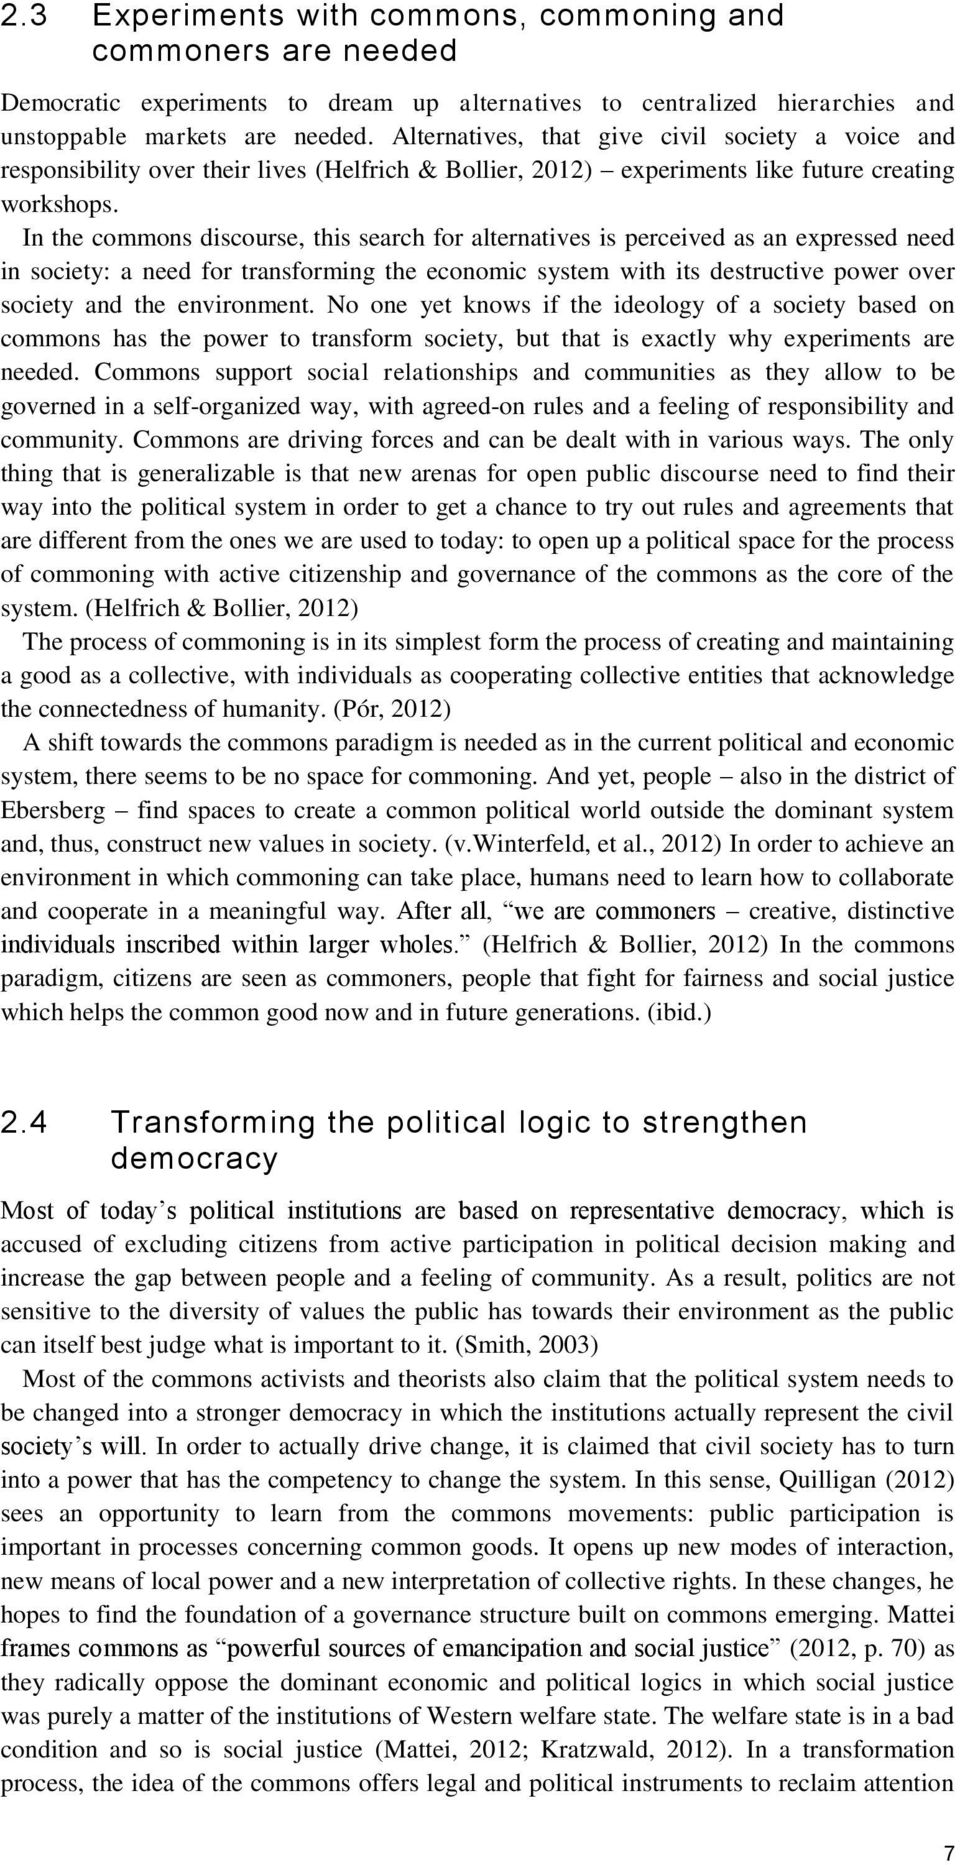 In the commons discourse, this search for alternatives is perceived as an expressed need in society: a need for transforming the economic system with its destructive power over society and the